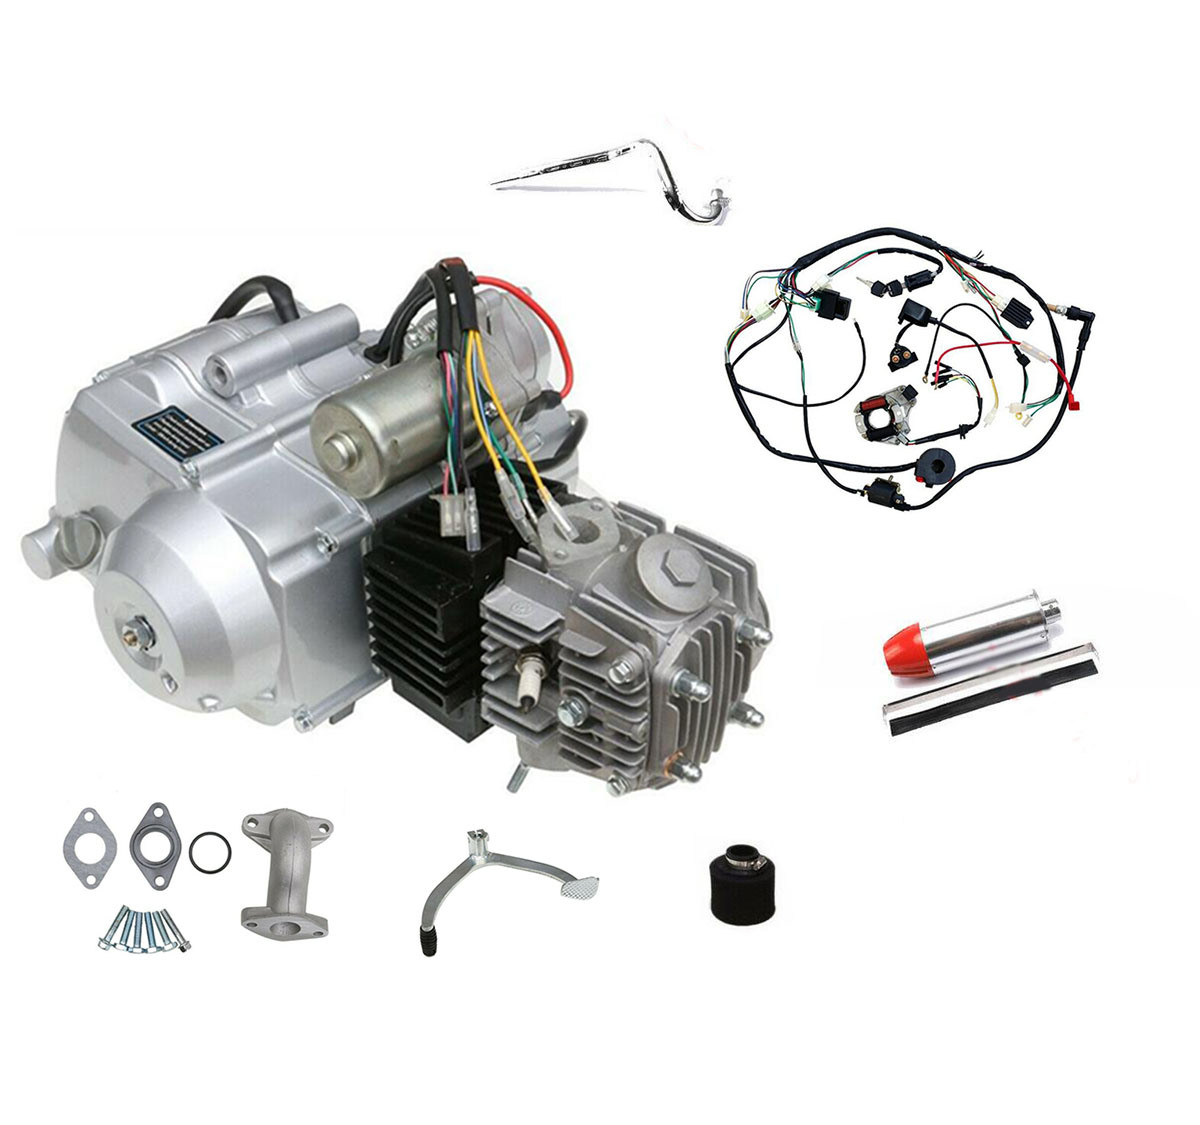 hight resolution of china 125cc engine motor kit wiring harness 3 speed reverse for atv quad go kart air cooled 4 stroke china engine motor atv quad